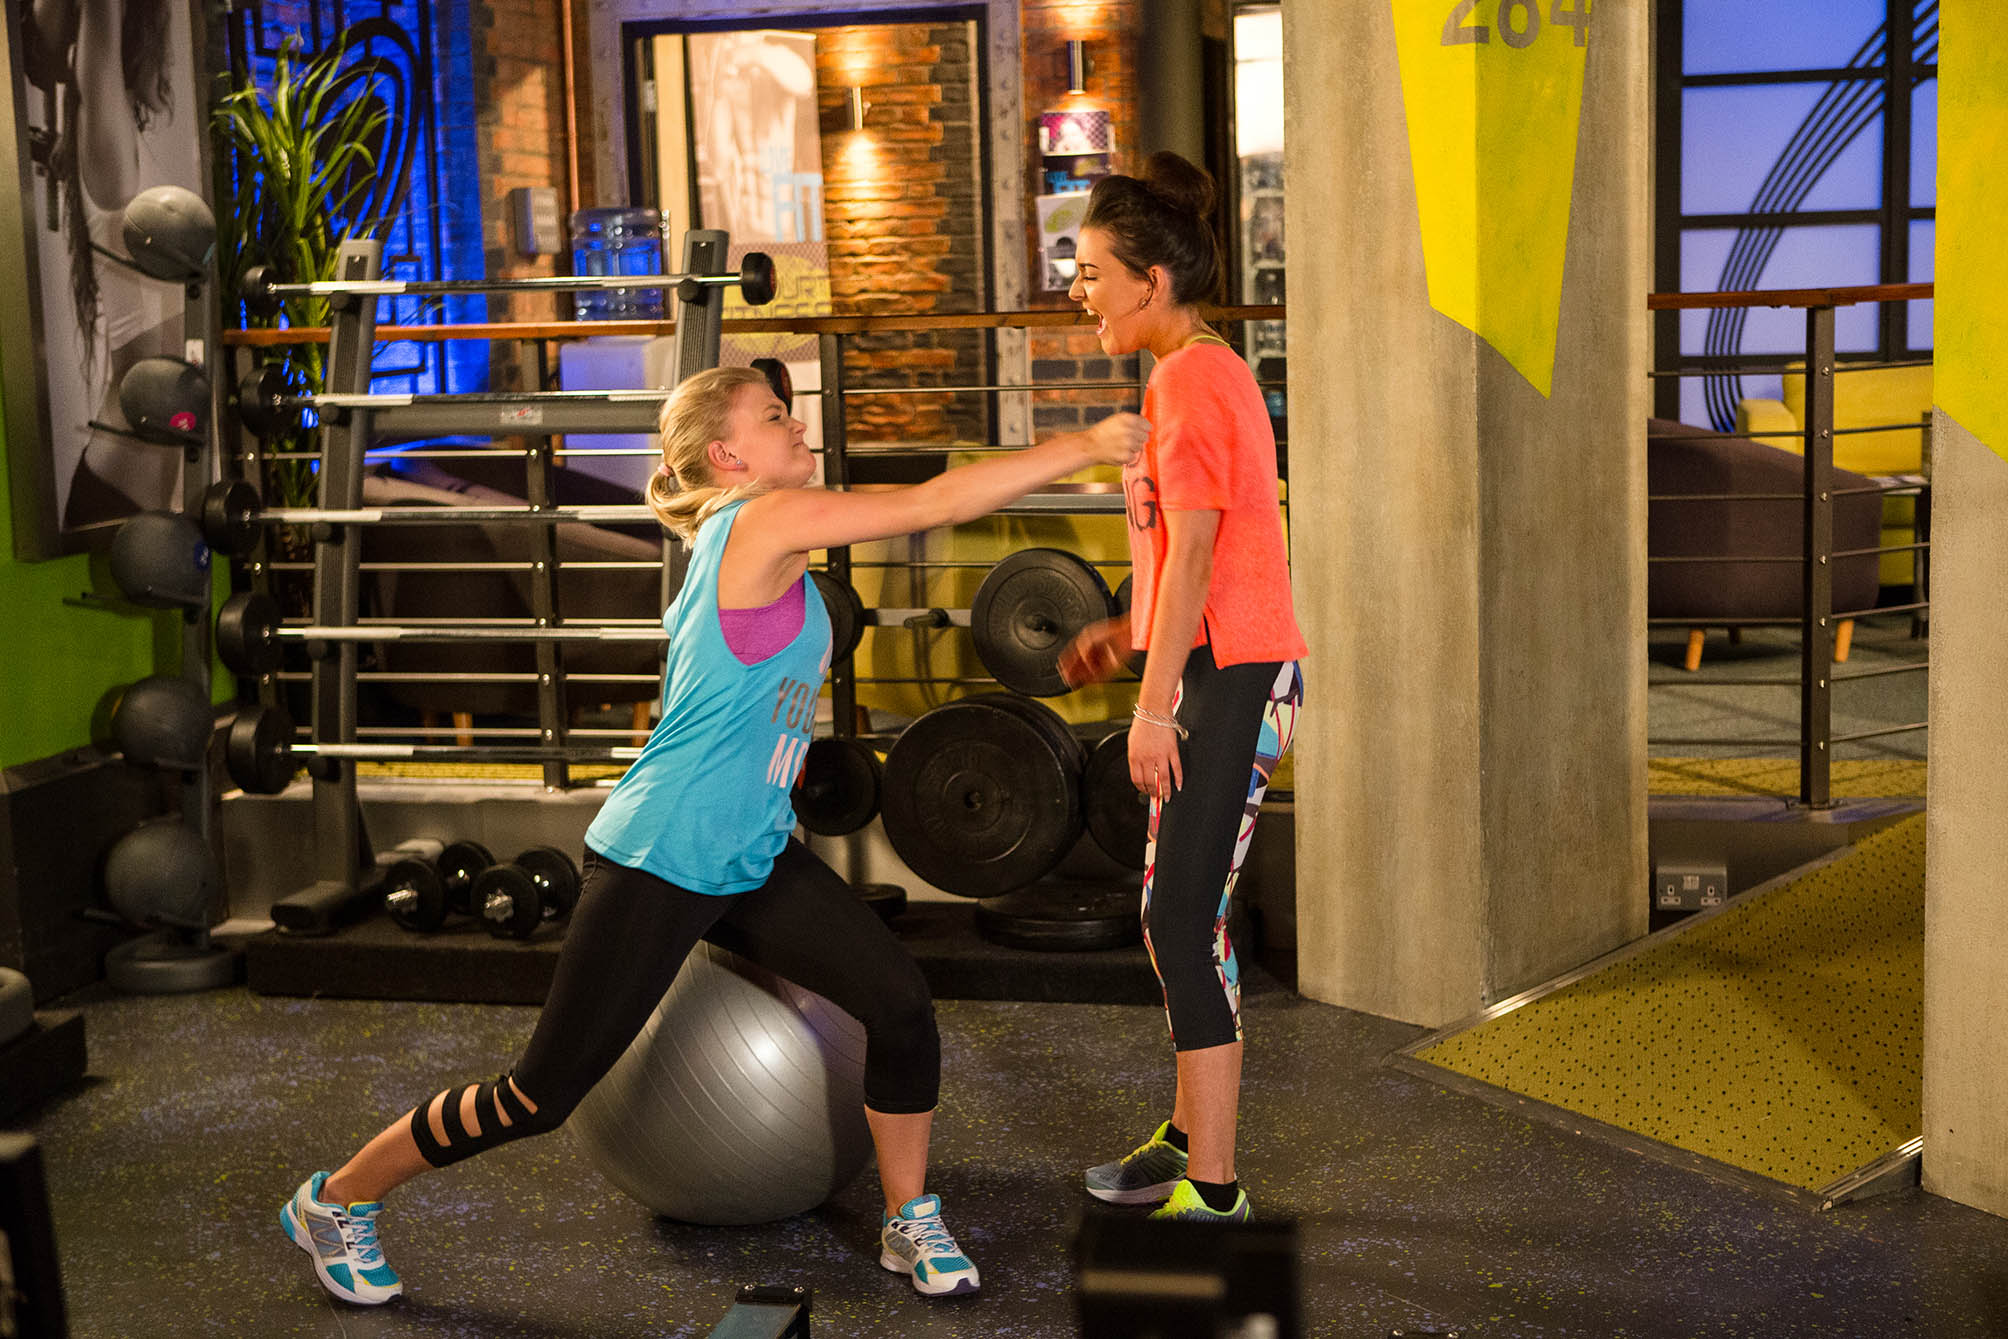 FROM ITV STRICT EMBARGO - NO USE BEFORE TUESDAY 16 AUGUST 2016 Coronation Street - Ep 8977 Friday 26th August 2016 - 2nd Ep Lauren [SHANNON FLYNN] tracks Bethany Platt [LUCY FALLON] down to the gym and makes cruel jibes about her weight. Gary Windass [MIKEY NORTH] watches as Lauren continues to taunt Bethany. Bethany finally snaps and punches Lauren. Bethany begs Gary not to tell Sarah about the bullying. Gary agrees on condition they report Lauren to the school. Picture contact: david.crook@itv.com on 0161 952 6214 Photographer: Mark Bruce This photograph is (C) ITV Plc and can only be reproduced for editorial purposes directly in connection with the programme or event mentioned above, or ITV plc. Once made available by ITV plc Picture Desk, this photograph can be reproduced once only up until the transmission [TX] date and no reproduction fee will be charged. Any subsequent usage may incur a fee. This photograph must not be manipulated [excluding basic cropping] in a manner which alters the visual appearance of the person photographed deemed detrimental or inappropriate by ITV plc Picture Desk. This photograph must not be syndicated to any other company, publication or website, or permanently archived, without the express written permission of ITV Plc Picture Desk. Full Terms and conditions are available on the website www.itvpictures.com